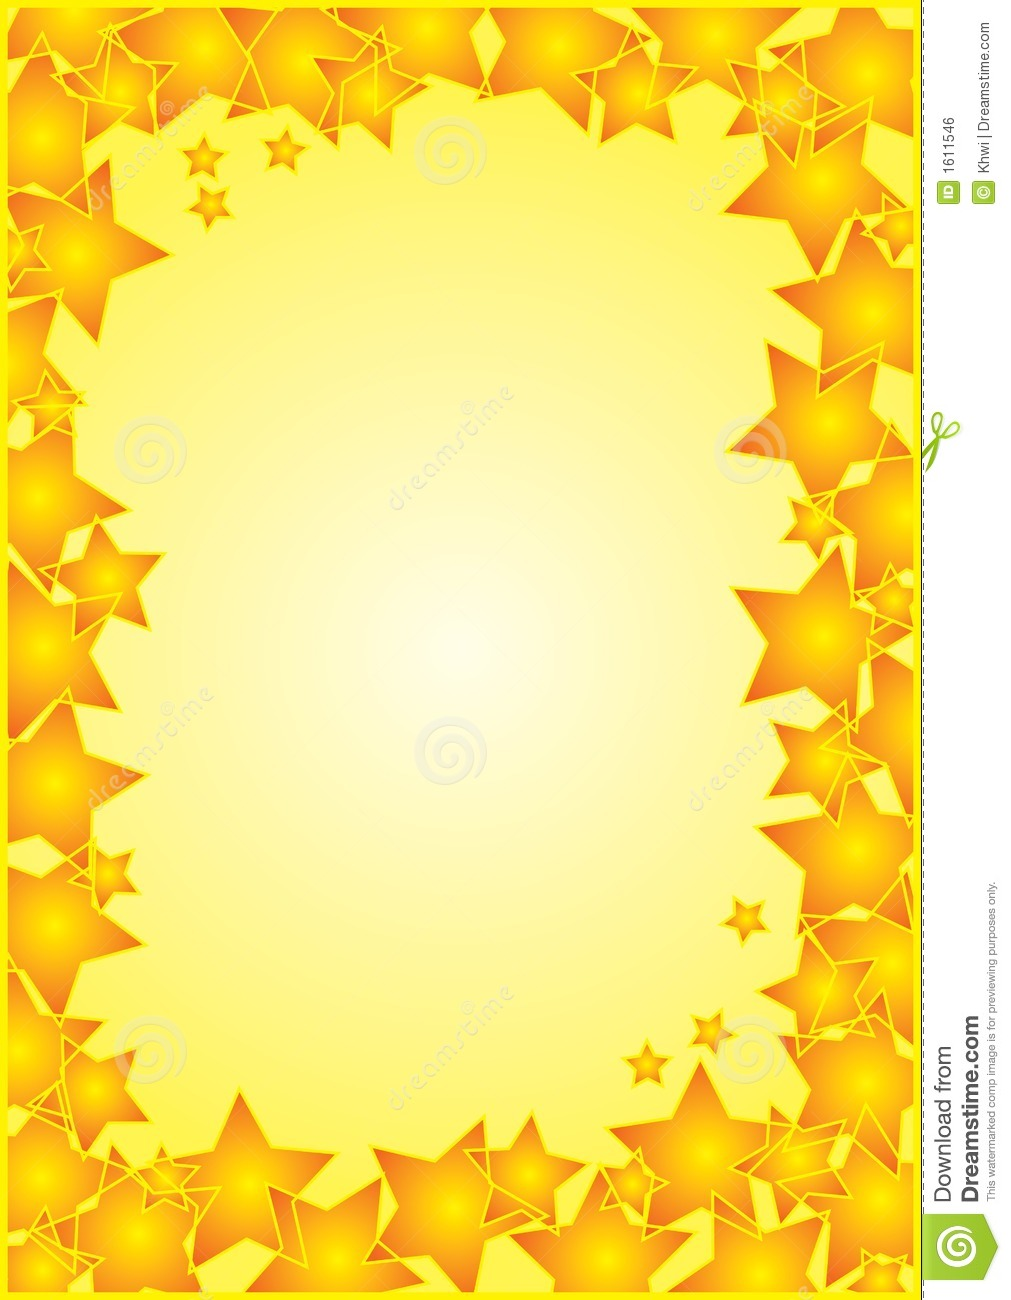 Free Star Border Clip Art Frame With Stars Border Royalty Free Stock